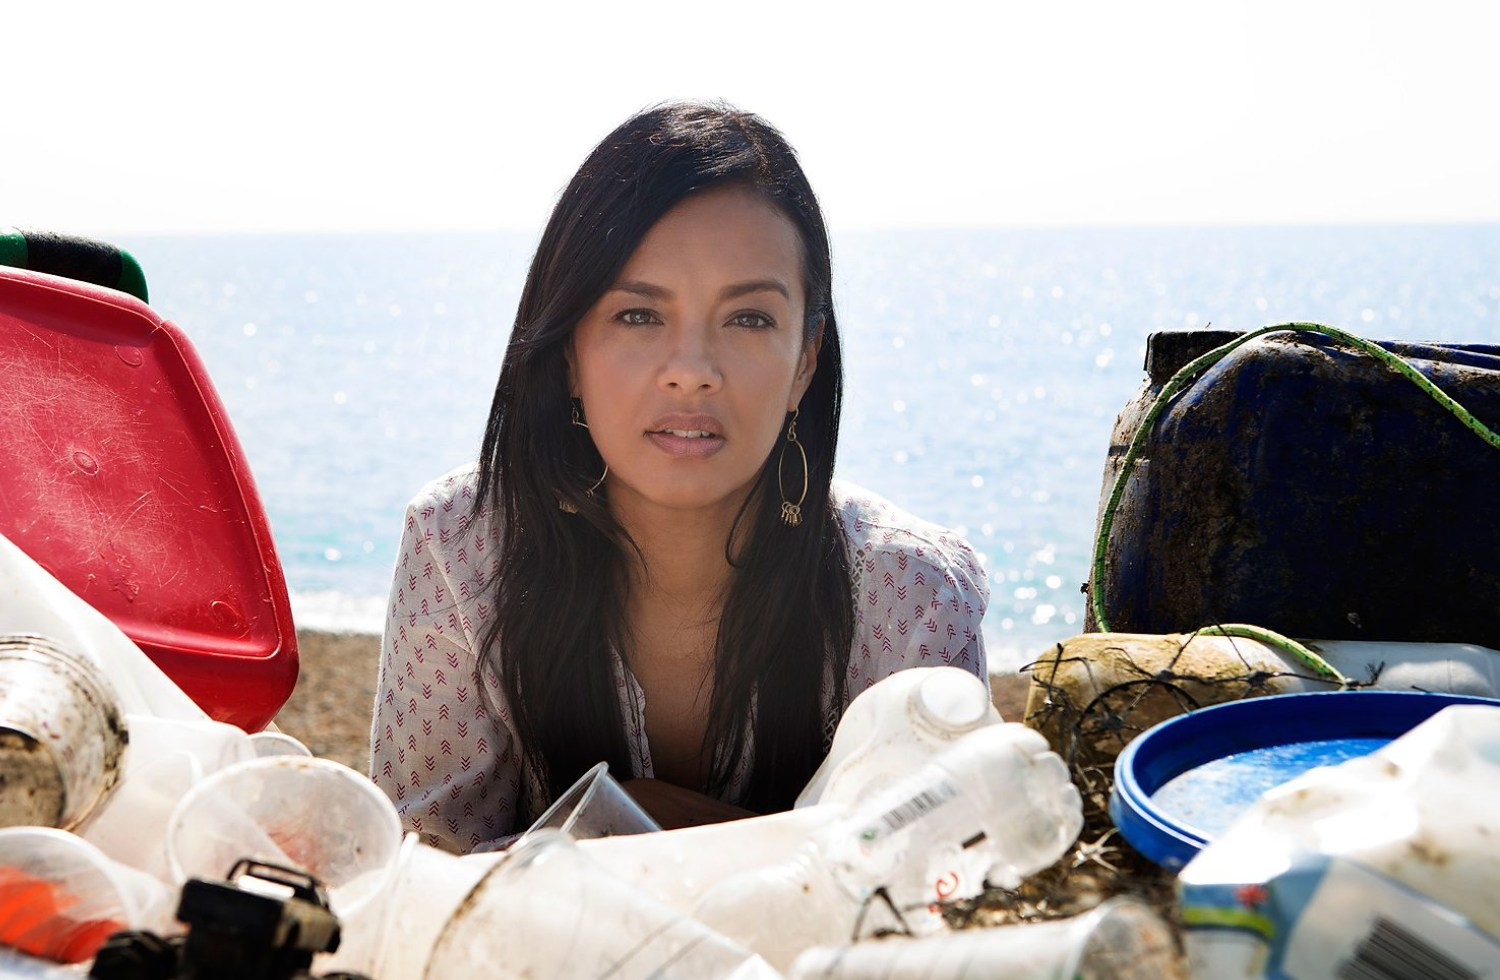 wildlife expert Liz Bonnin